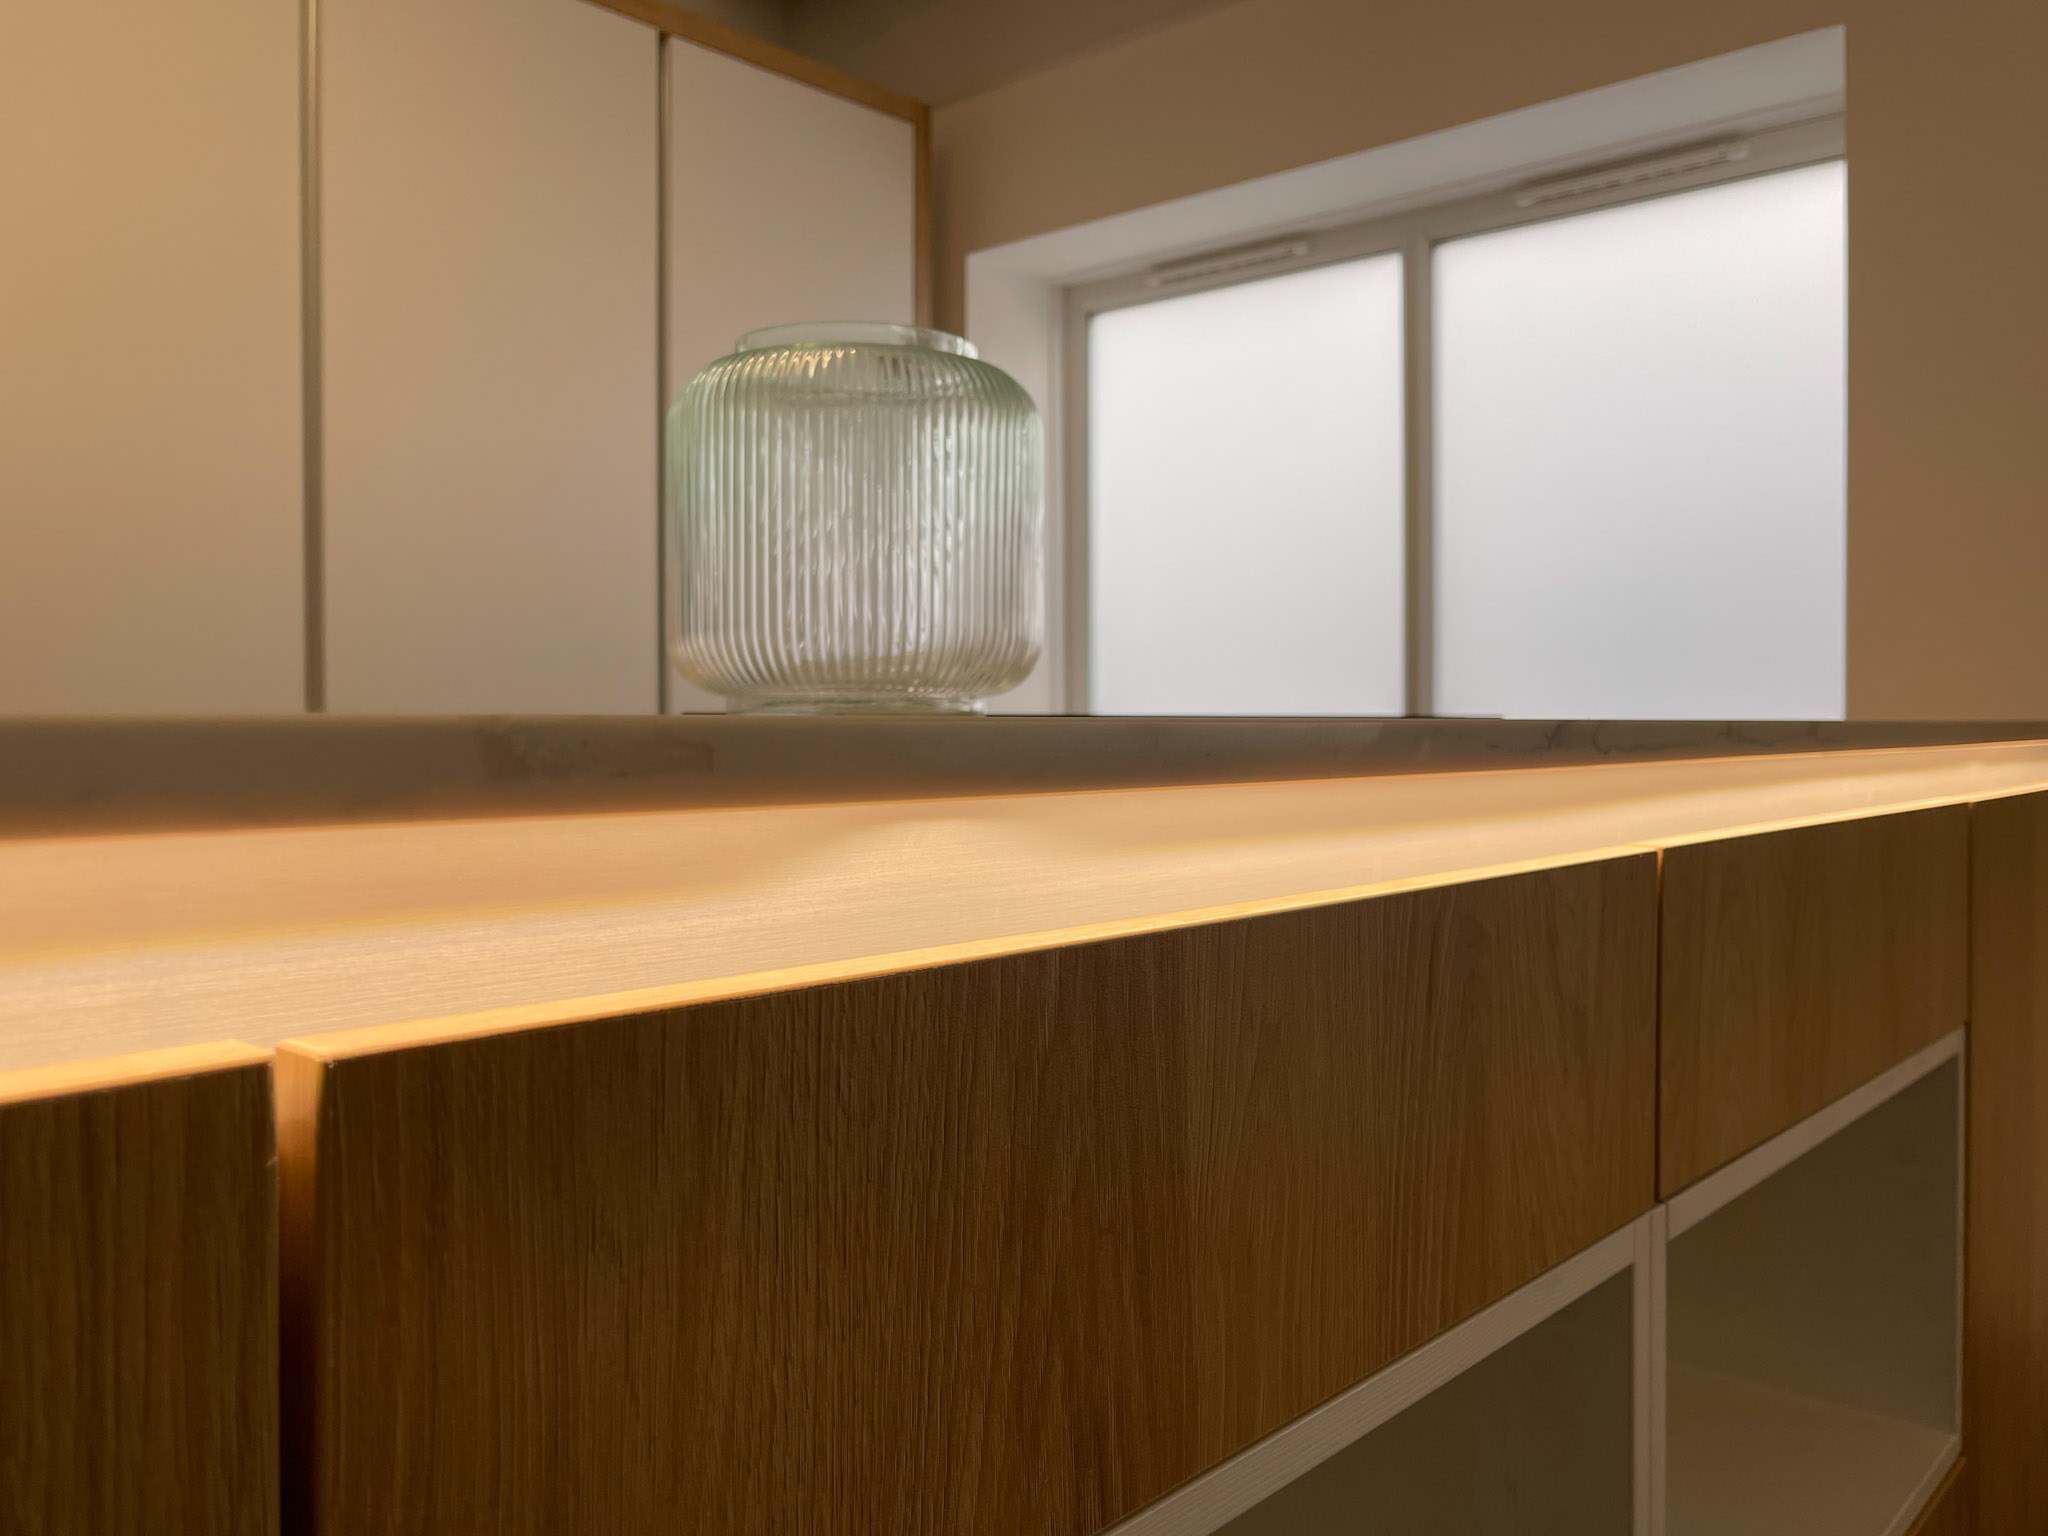 Routed out light groove in quartz